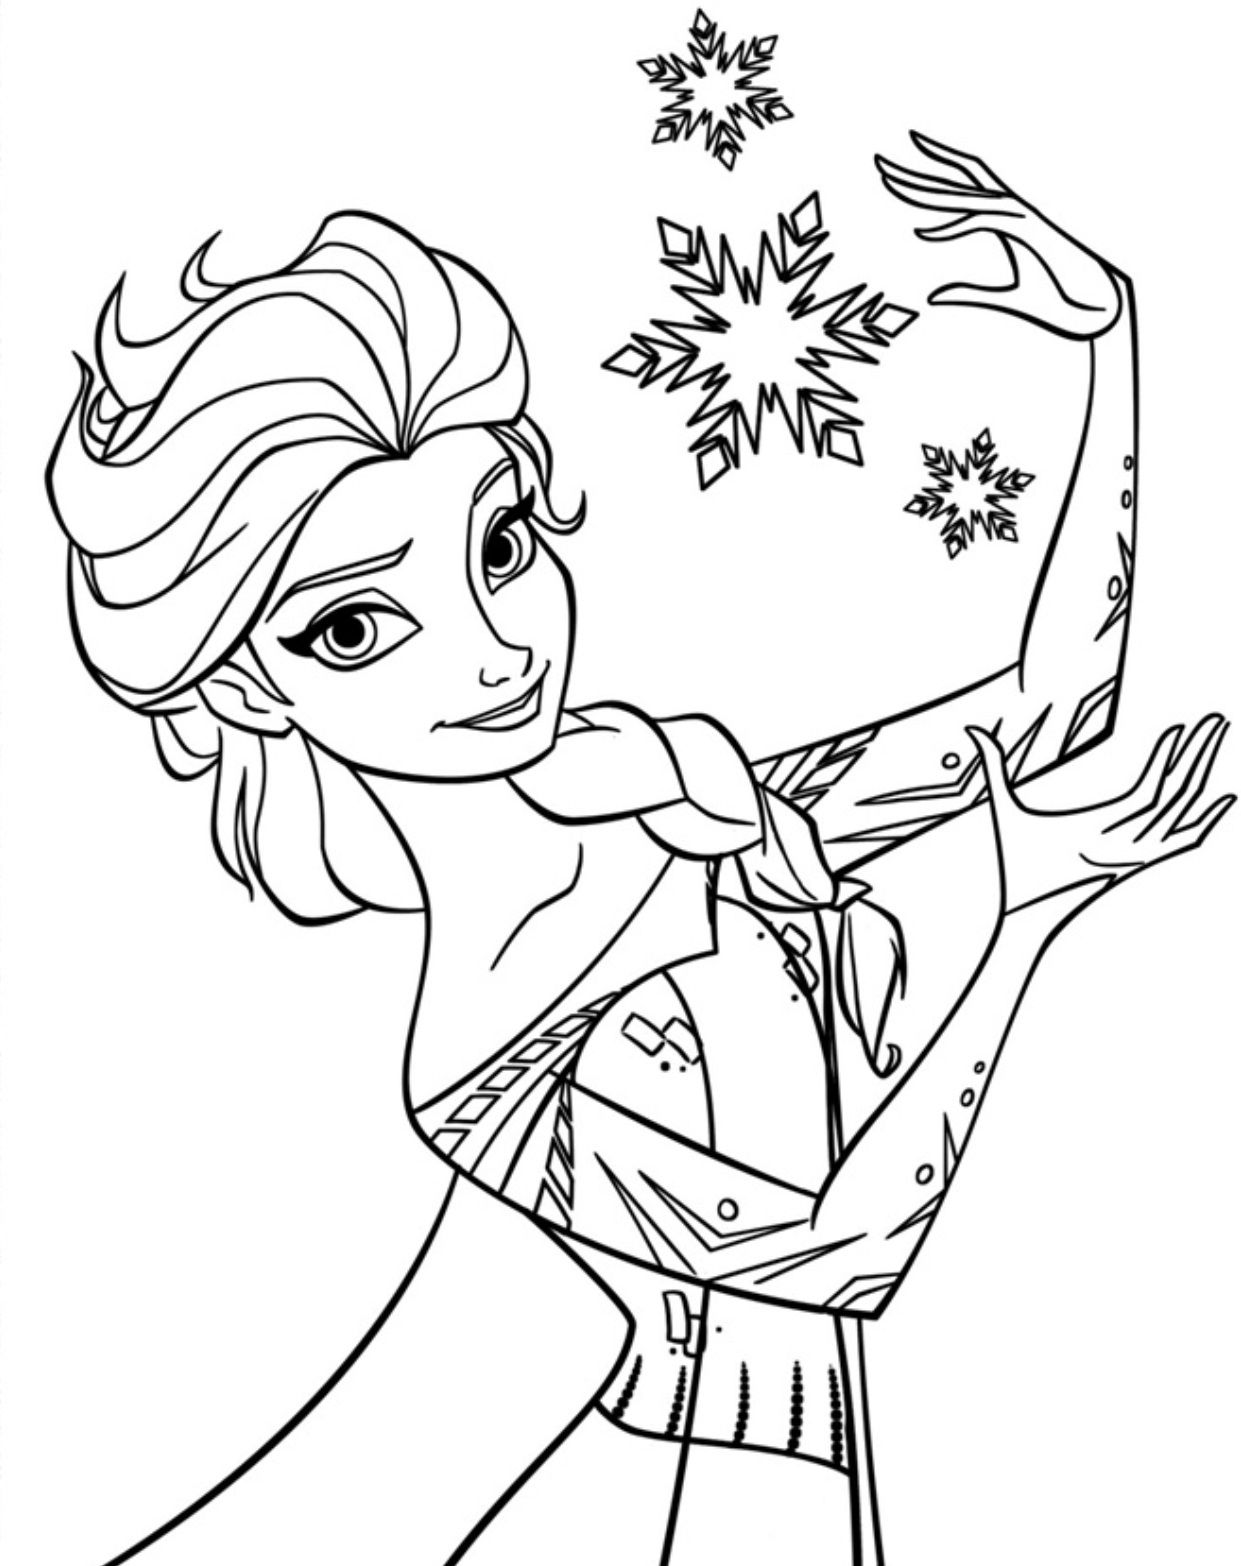 Free Printable Elsa Coloring Pages For Kids Best Coloring Pages For Kids Elsa Coloring Pages Disney Princess Coloring Pages Frozen Coloring Sheets